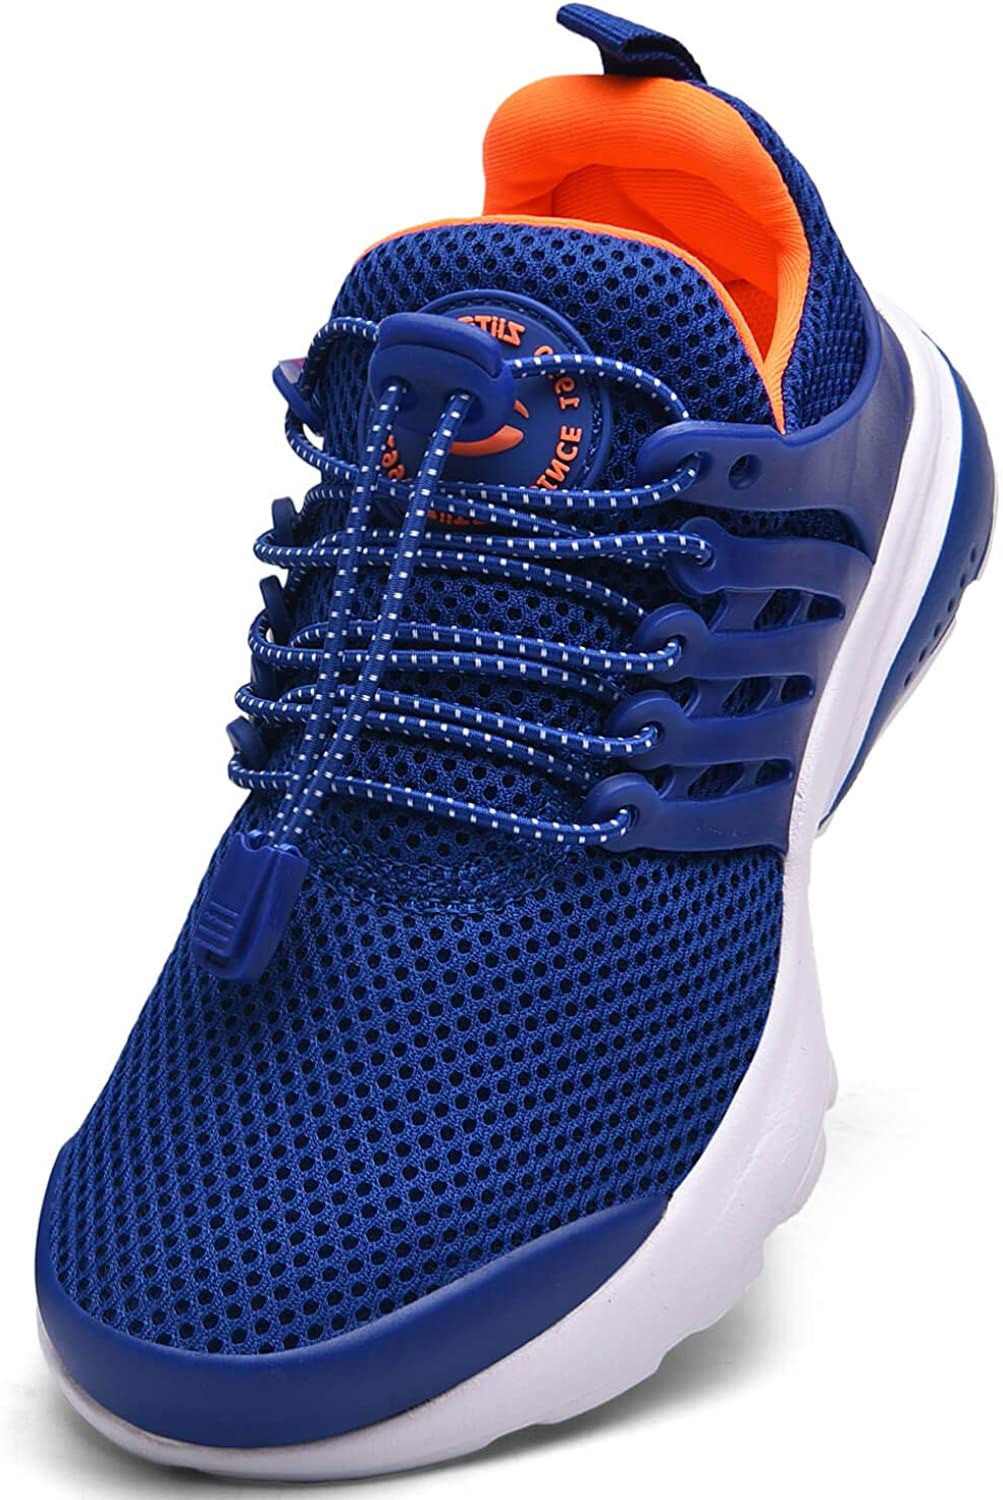 ziitop Boys Girls Sneakers Lightweight Breathable Athletic Running Shoes Fashion Sport Gym Jogging Tennis Walking Shoes